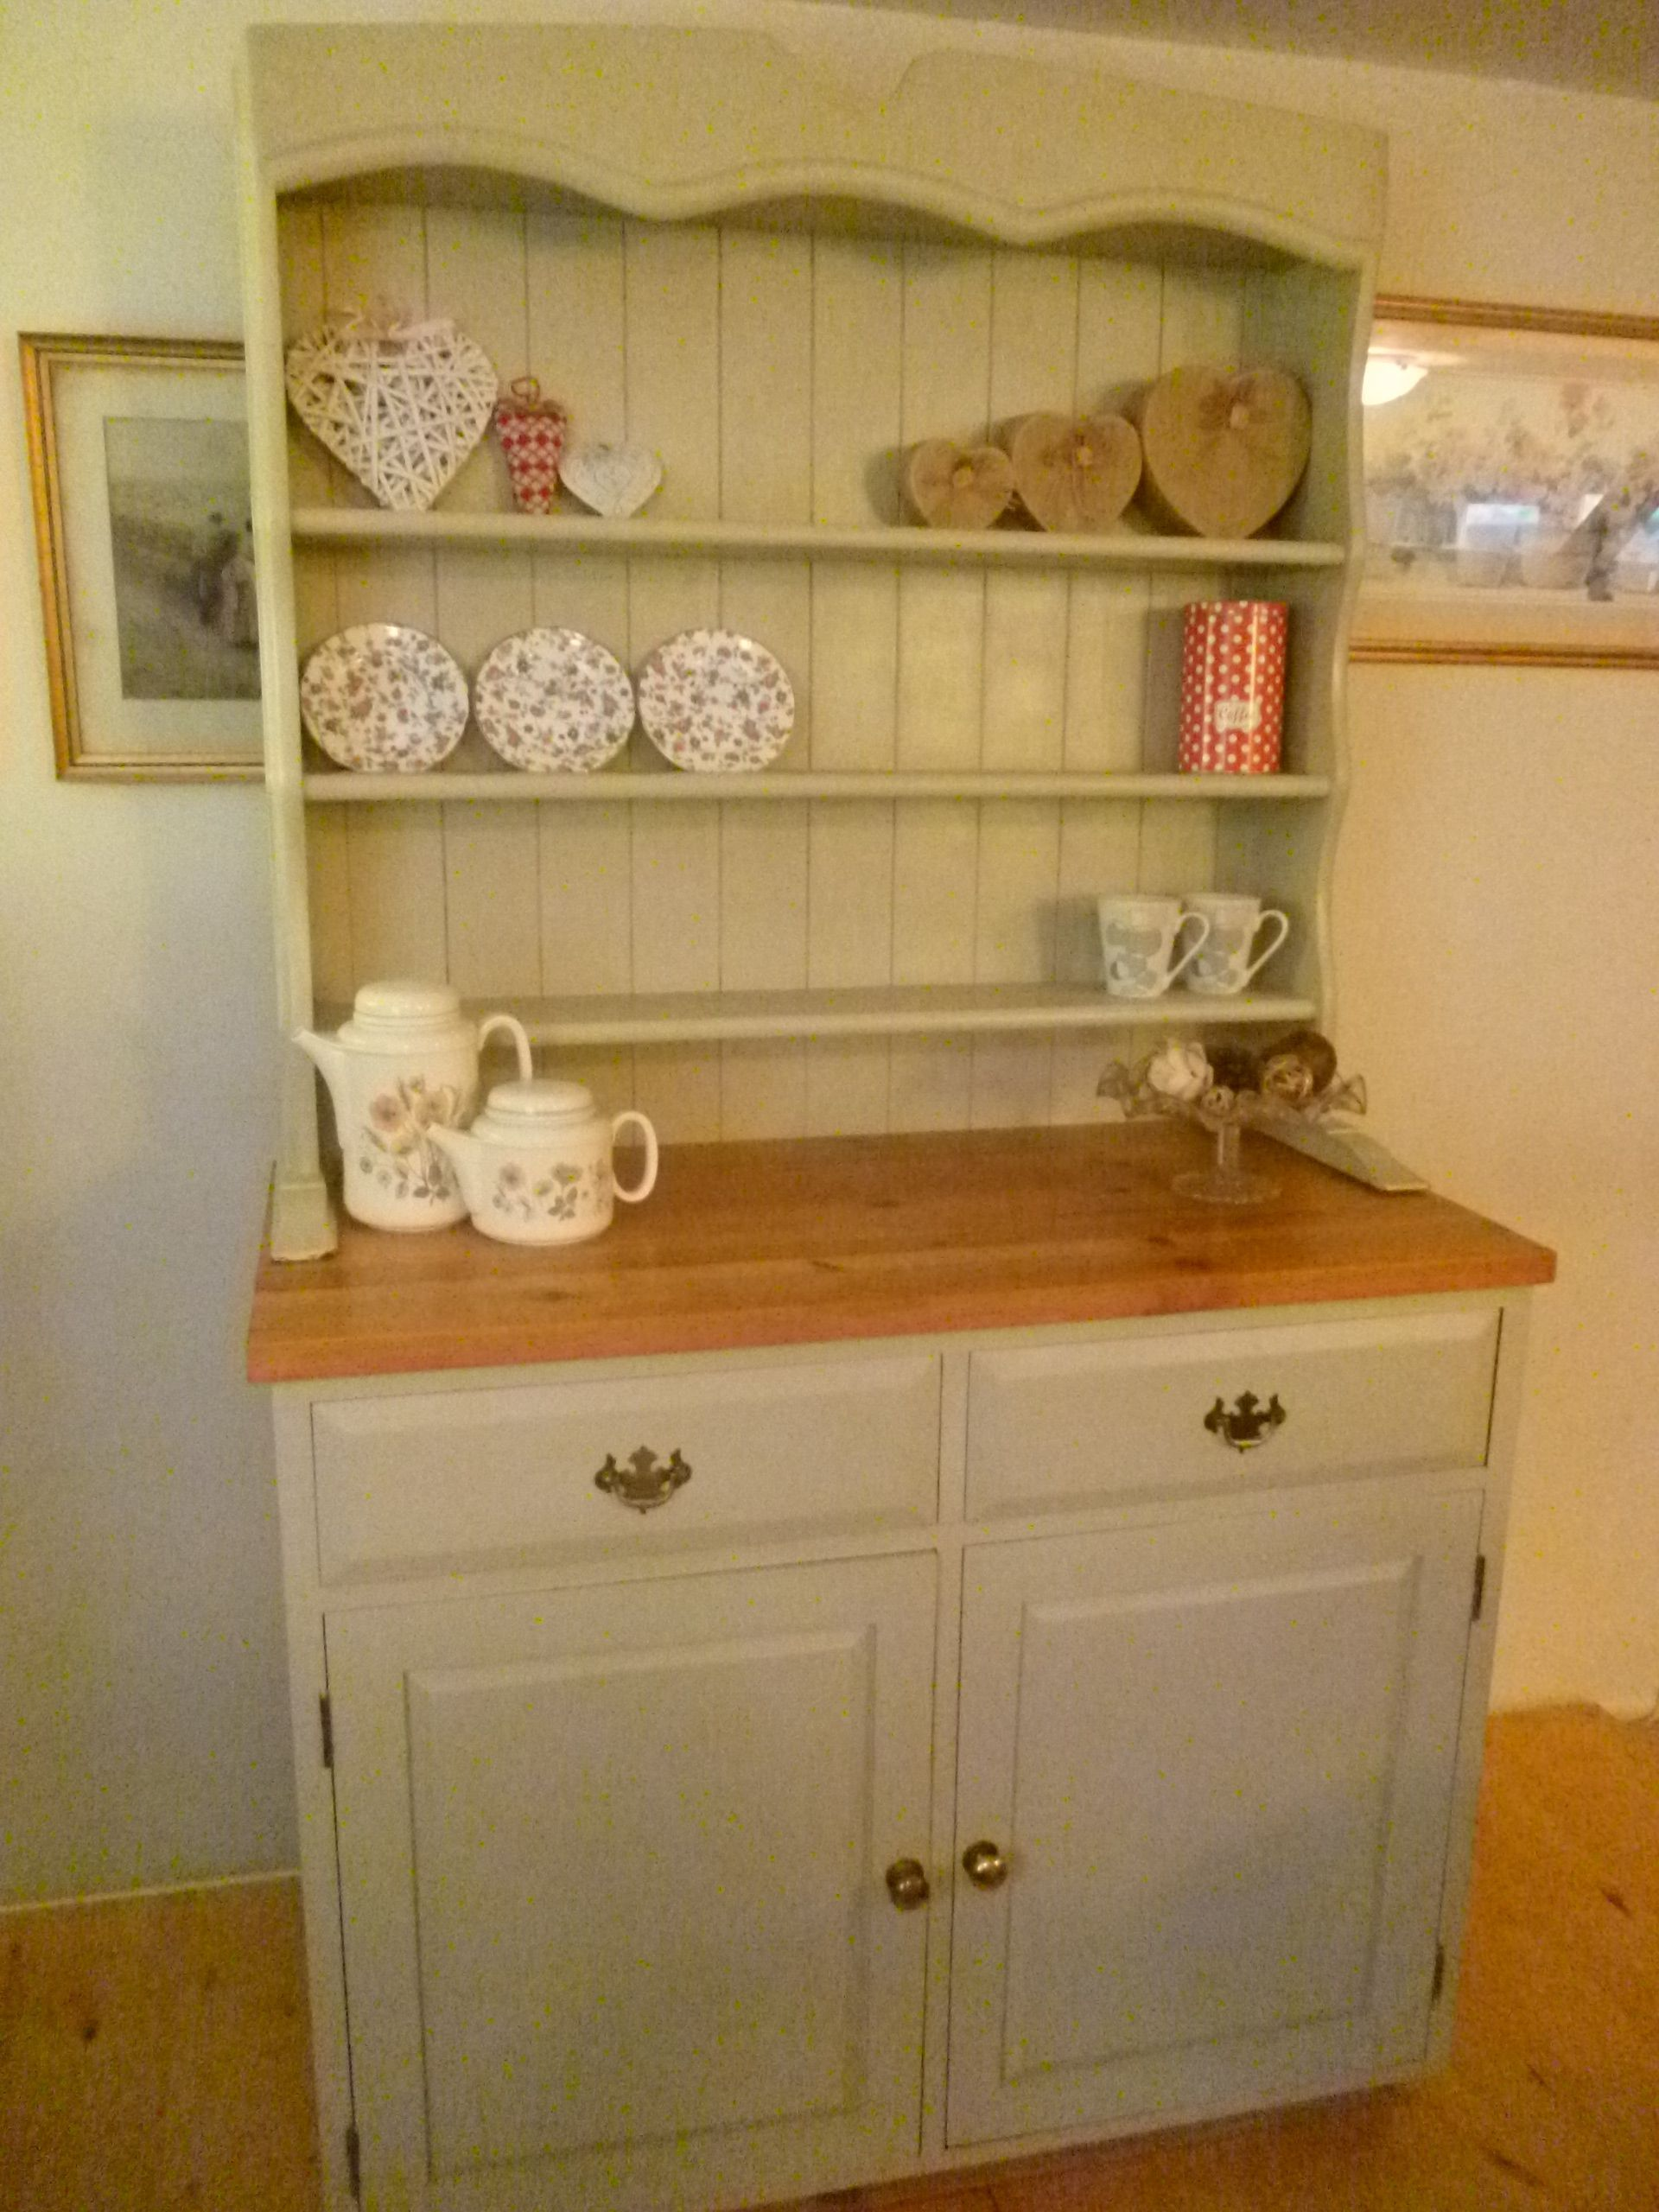 Welsh Dresser Given A Shabby Chic Makeover,Dresser Rubbed Down Painted